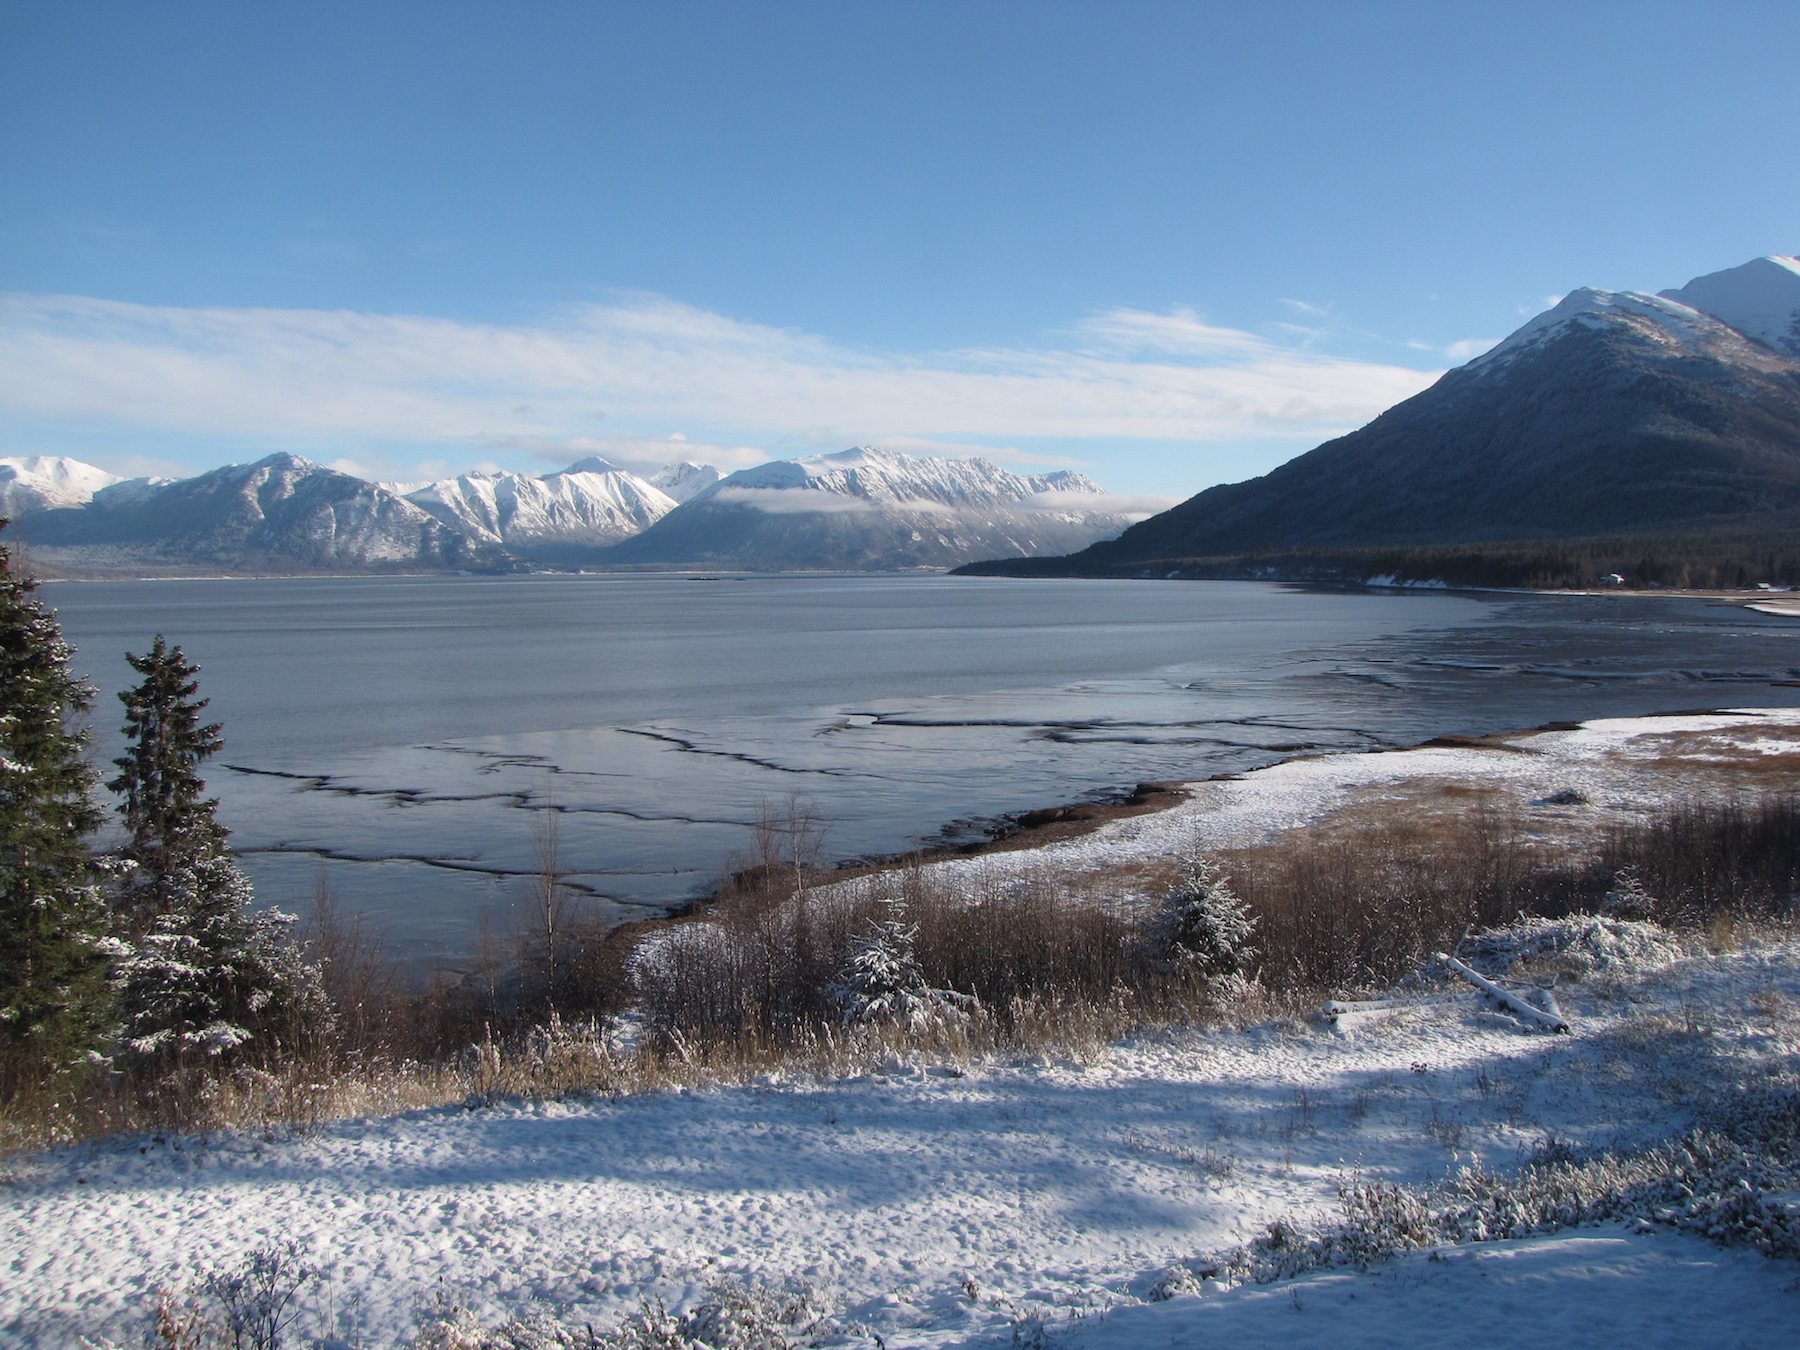 The Turnagain Arm, is in the northwestern part of the Gulf of Alaska, and close to the location of last week's M=4.9 earthquake felt by Lester Lubetkin. (Photo from: Lester Lubetkin)